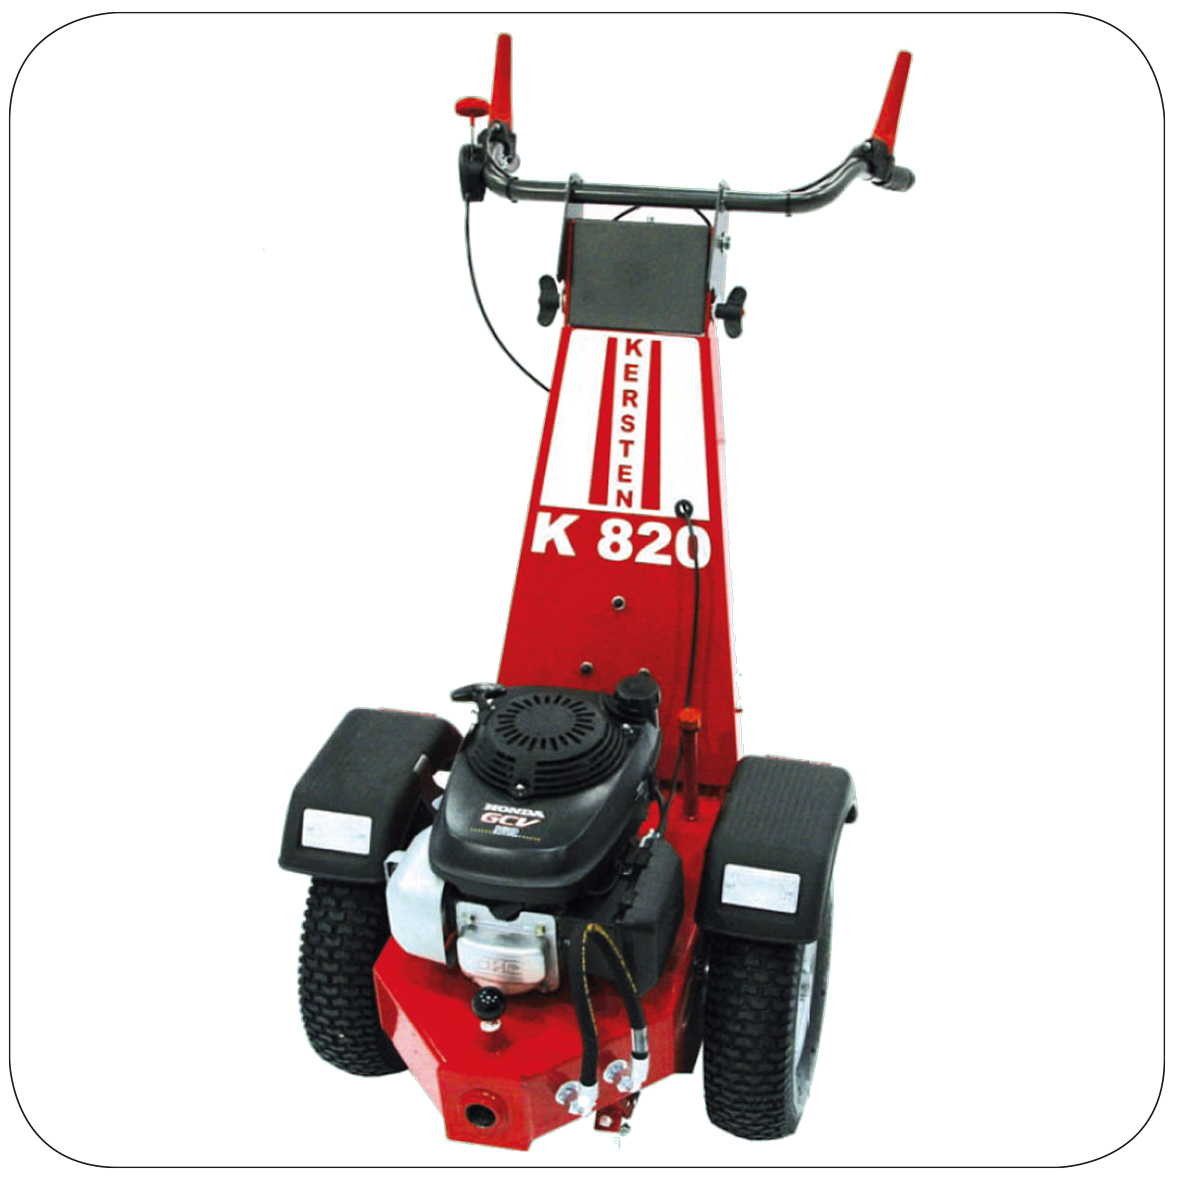 Kersten K 820 - Hydraulic 2 Wheel Tractor with Sweeper